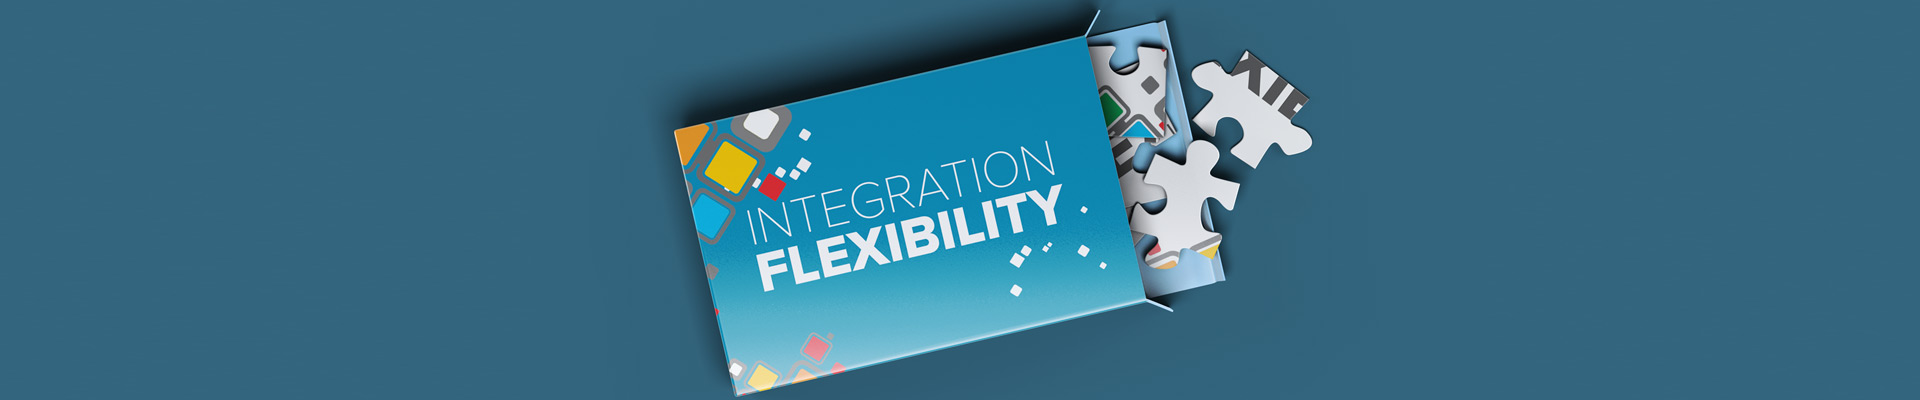 Integration and Flexibility